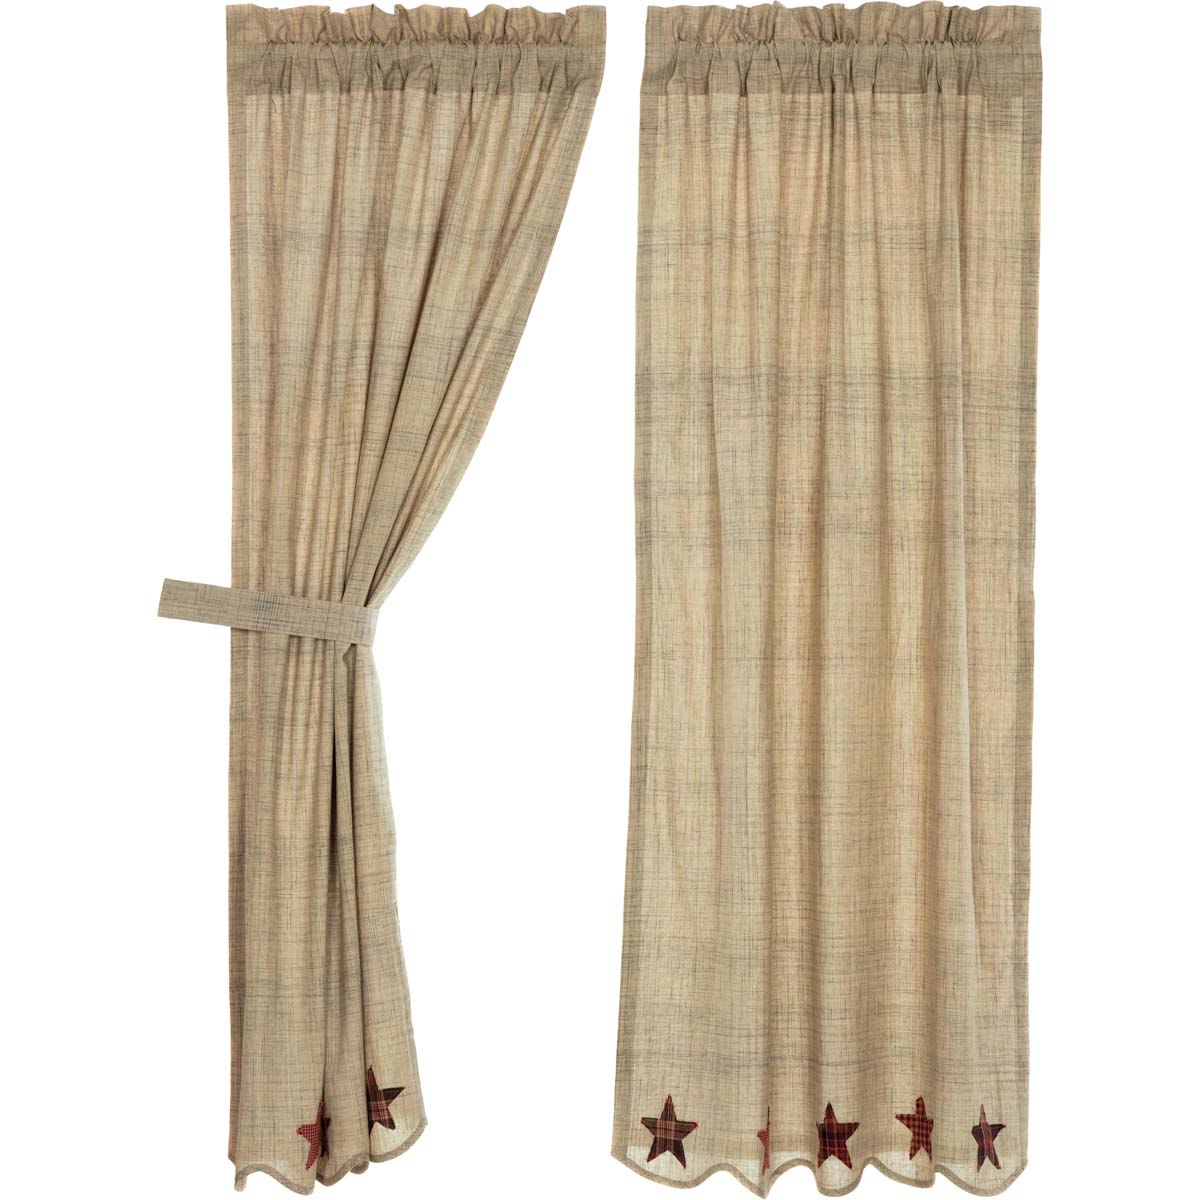 Abilene Star Curtain Collection